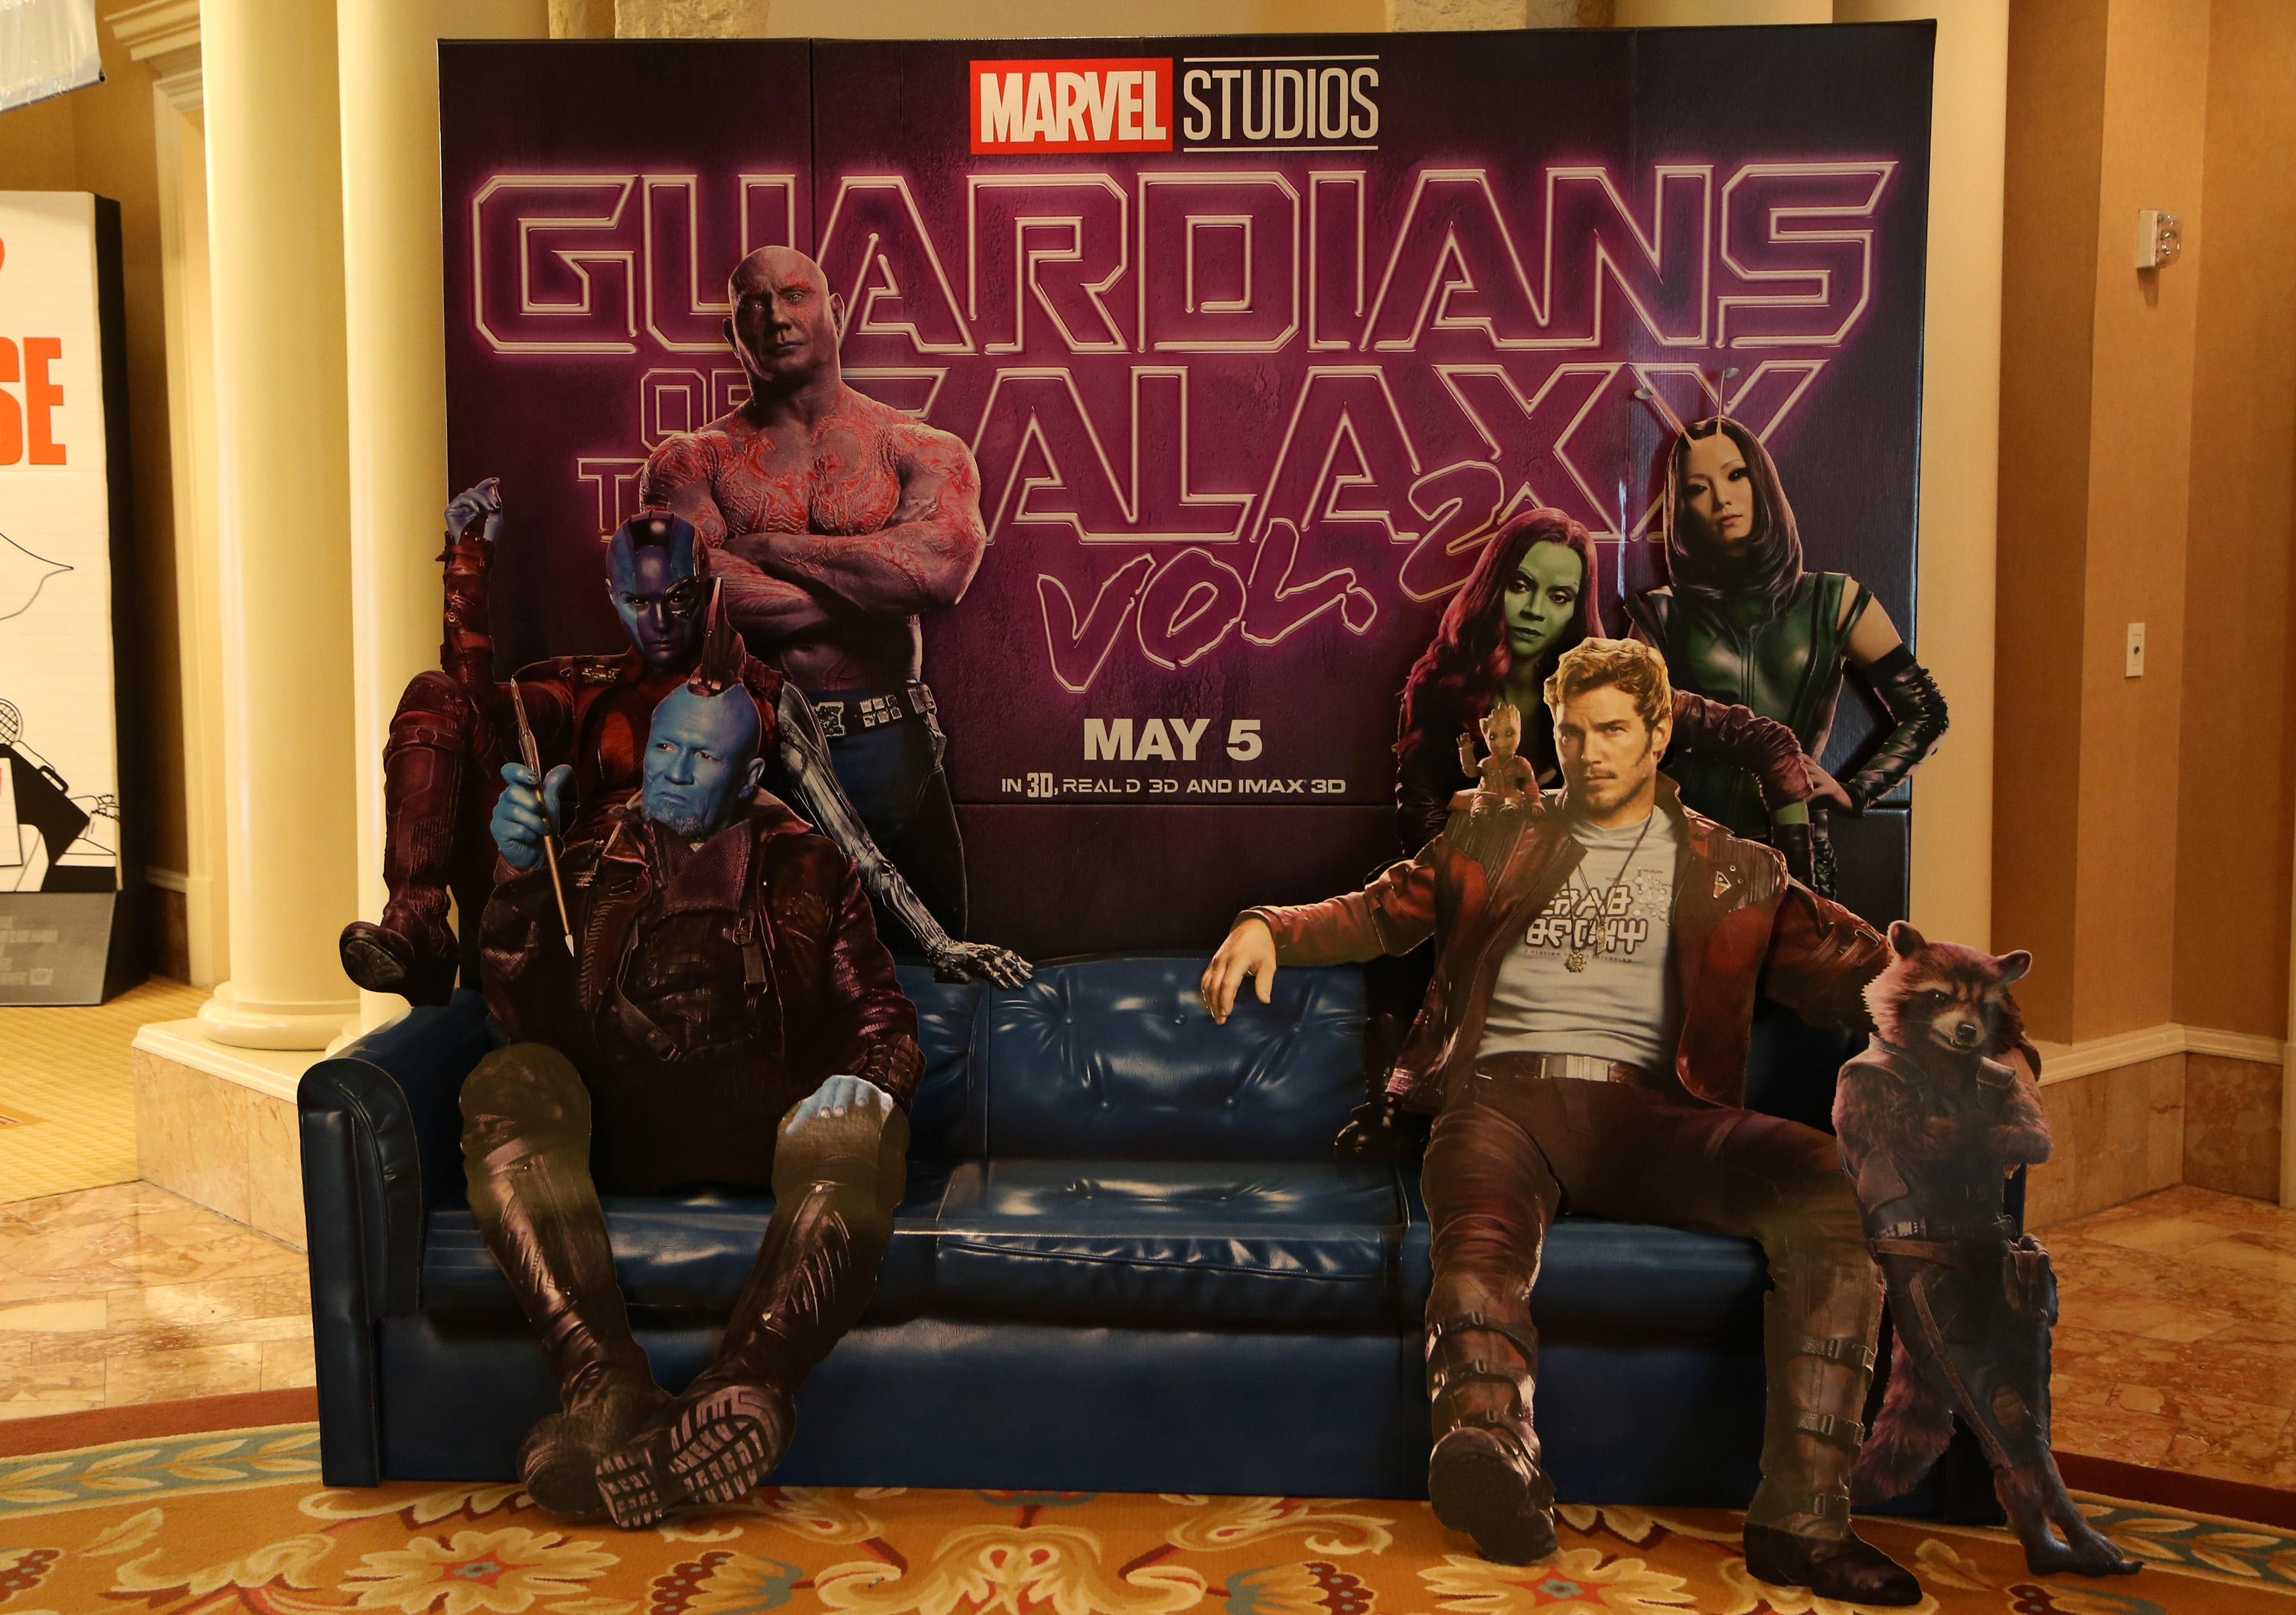 """LAS VEGAS, NV - MARCH 27: An advertisement for the upcoming movie """"Guardians of the Galaxy Vol. 2"""" is displayed at CinemaCon at Caesars Palace on March 27, 2017 in Las Vegas, United States."""